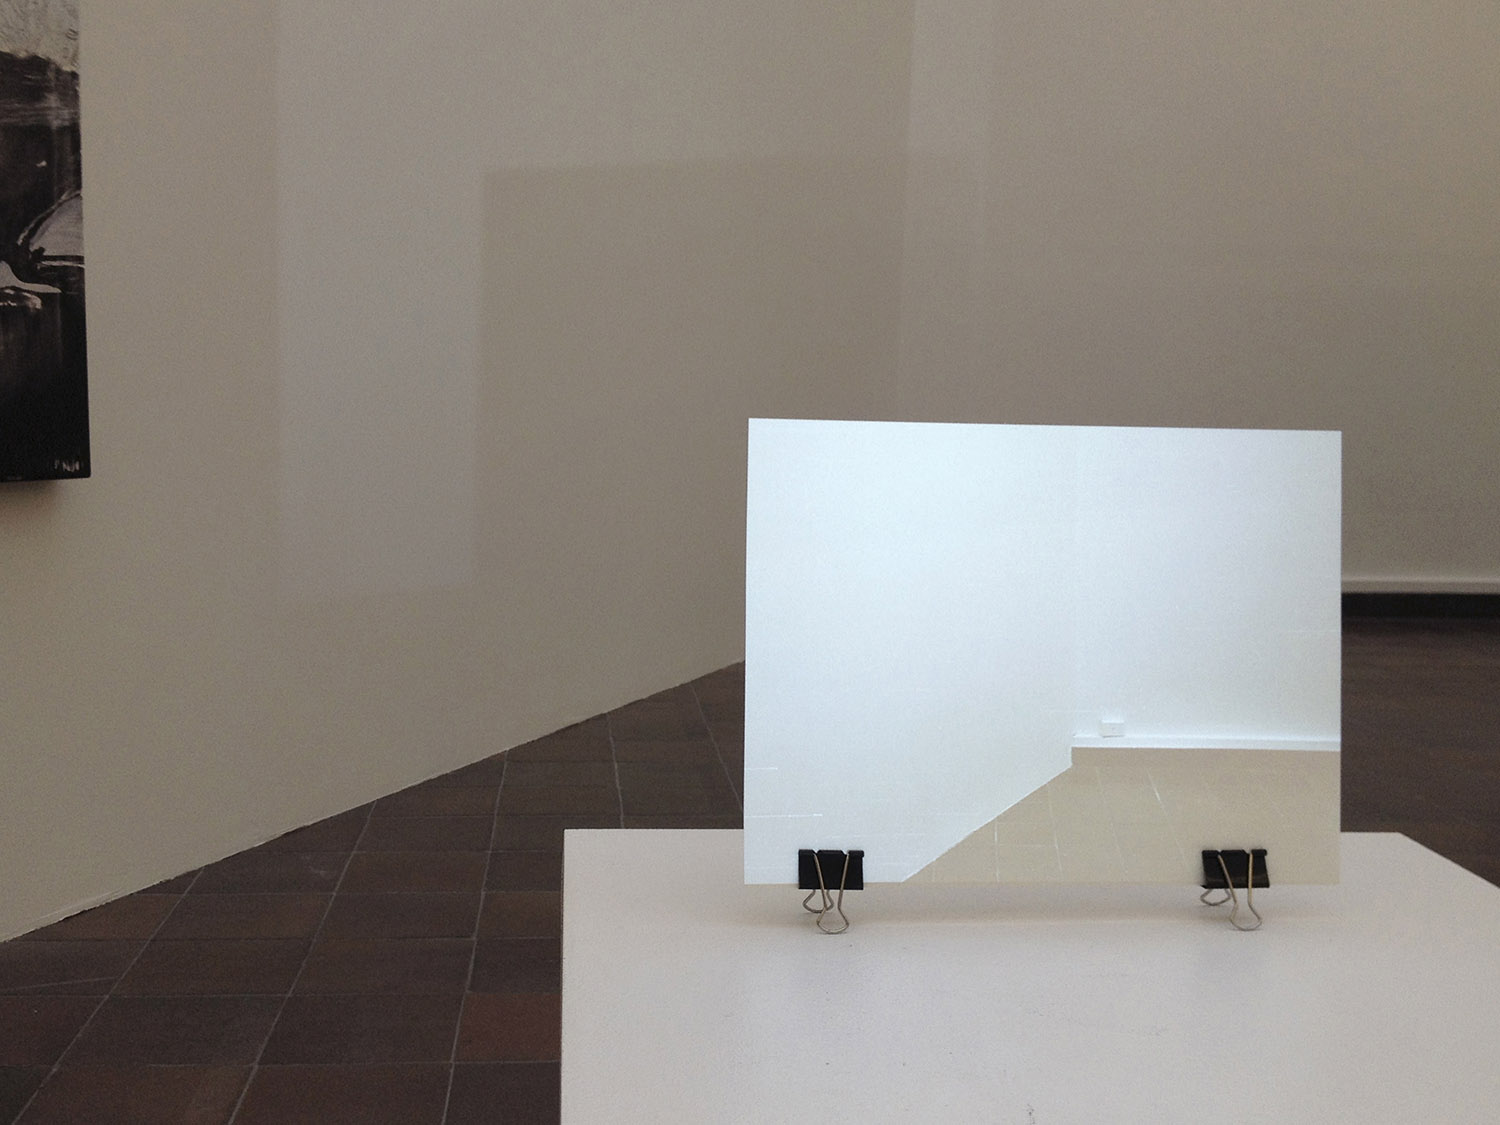 Installation view at Göteborgs Konsthall.